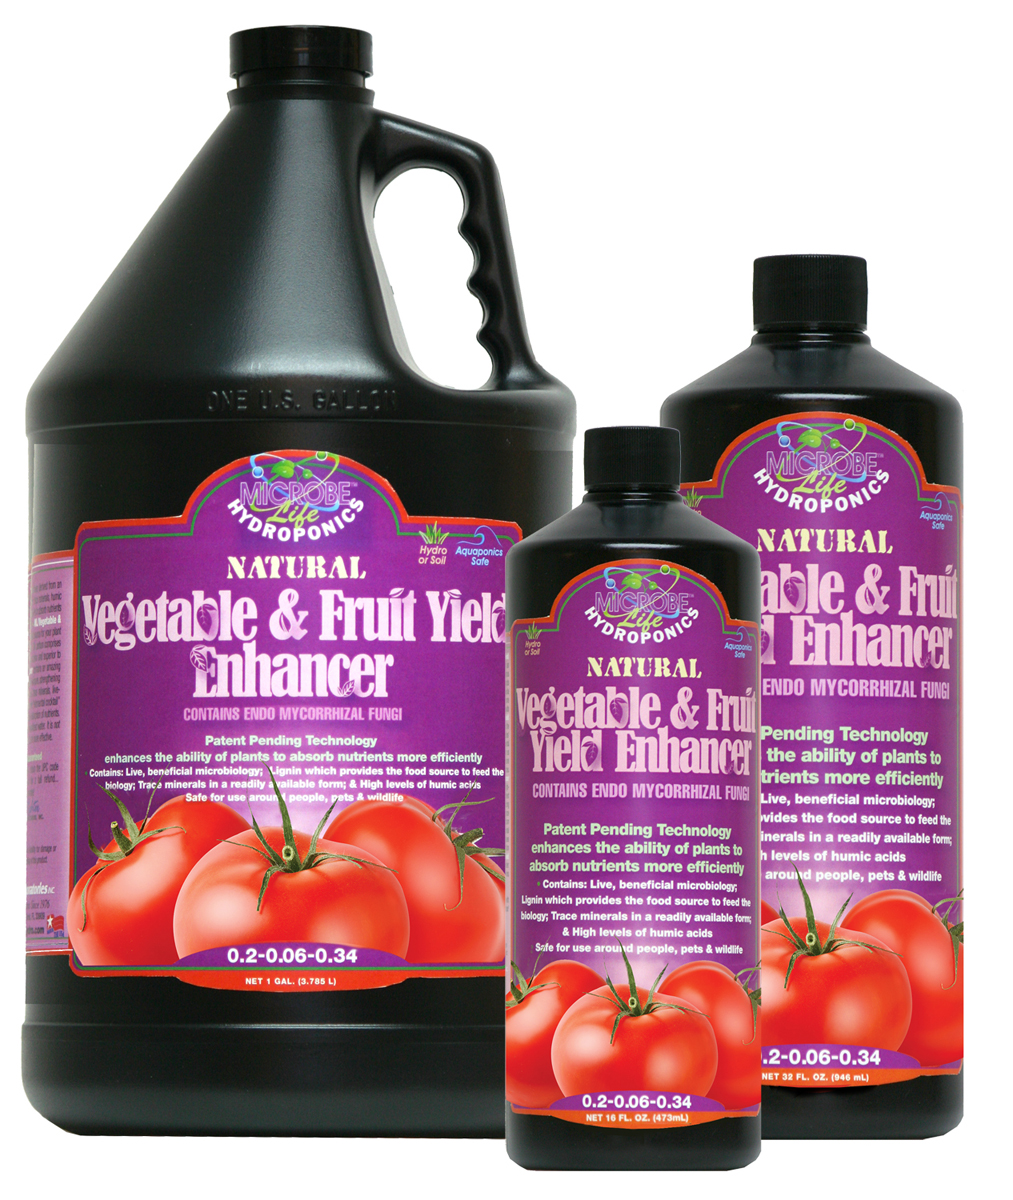 Microbe Life Vegetable & Fruit Yield Enhancer 1 Pint